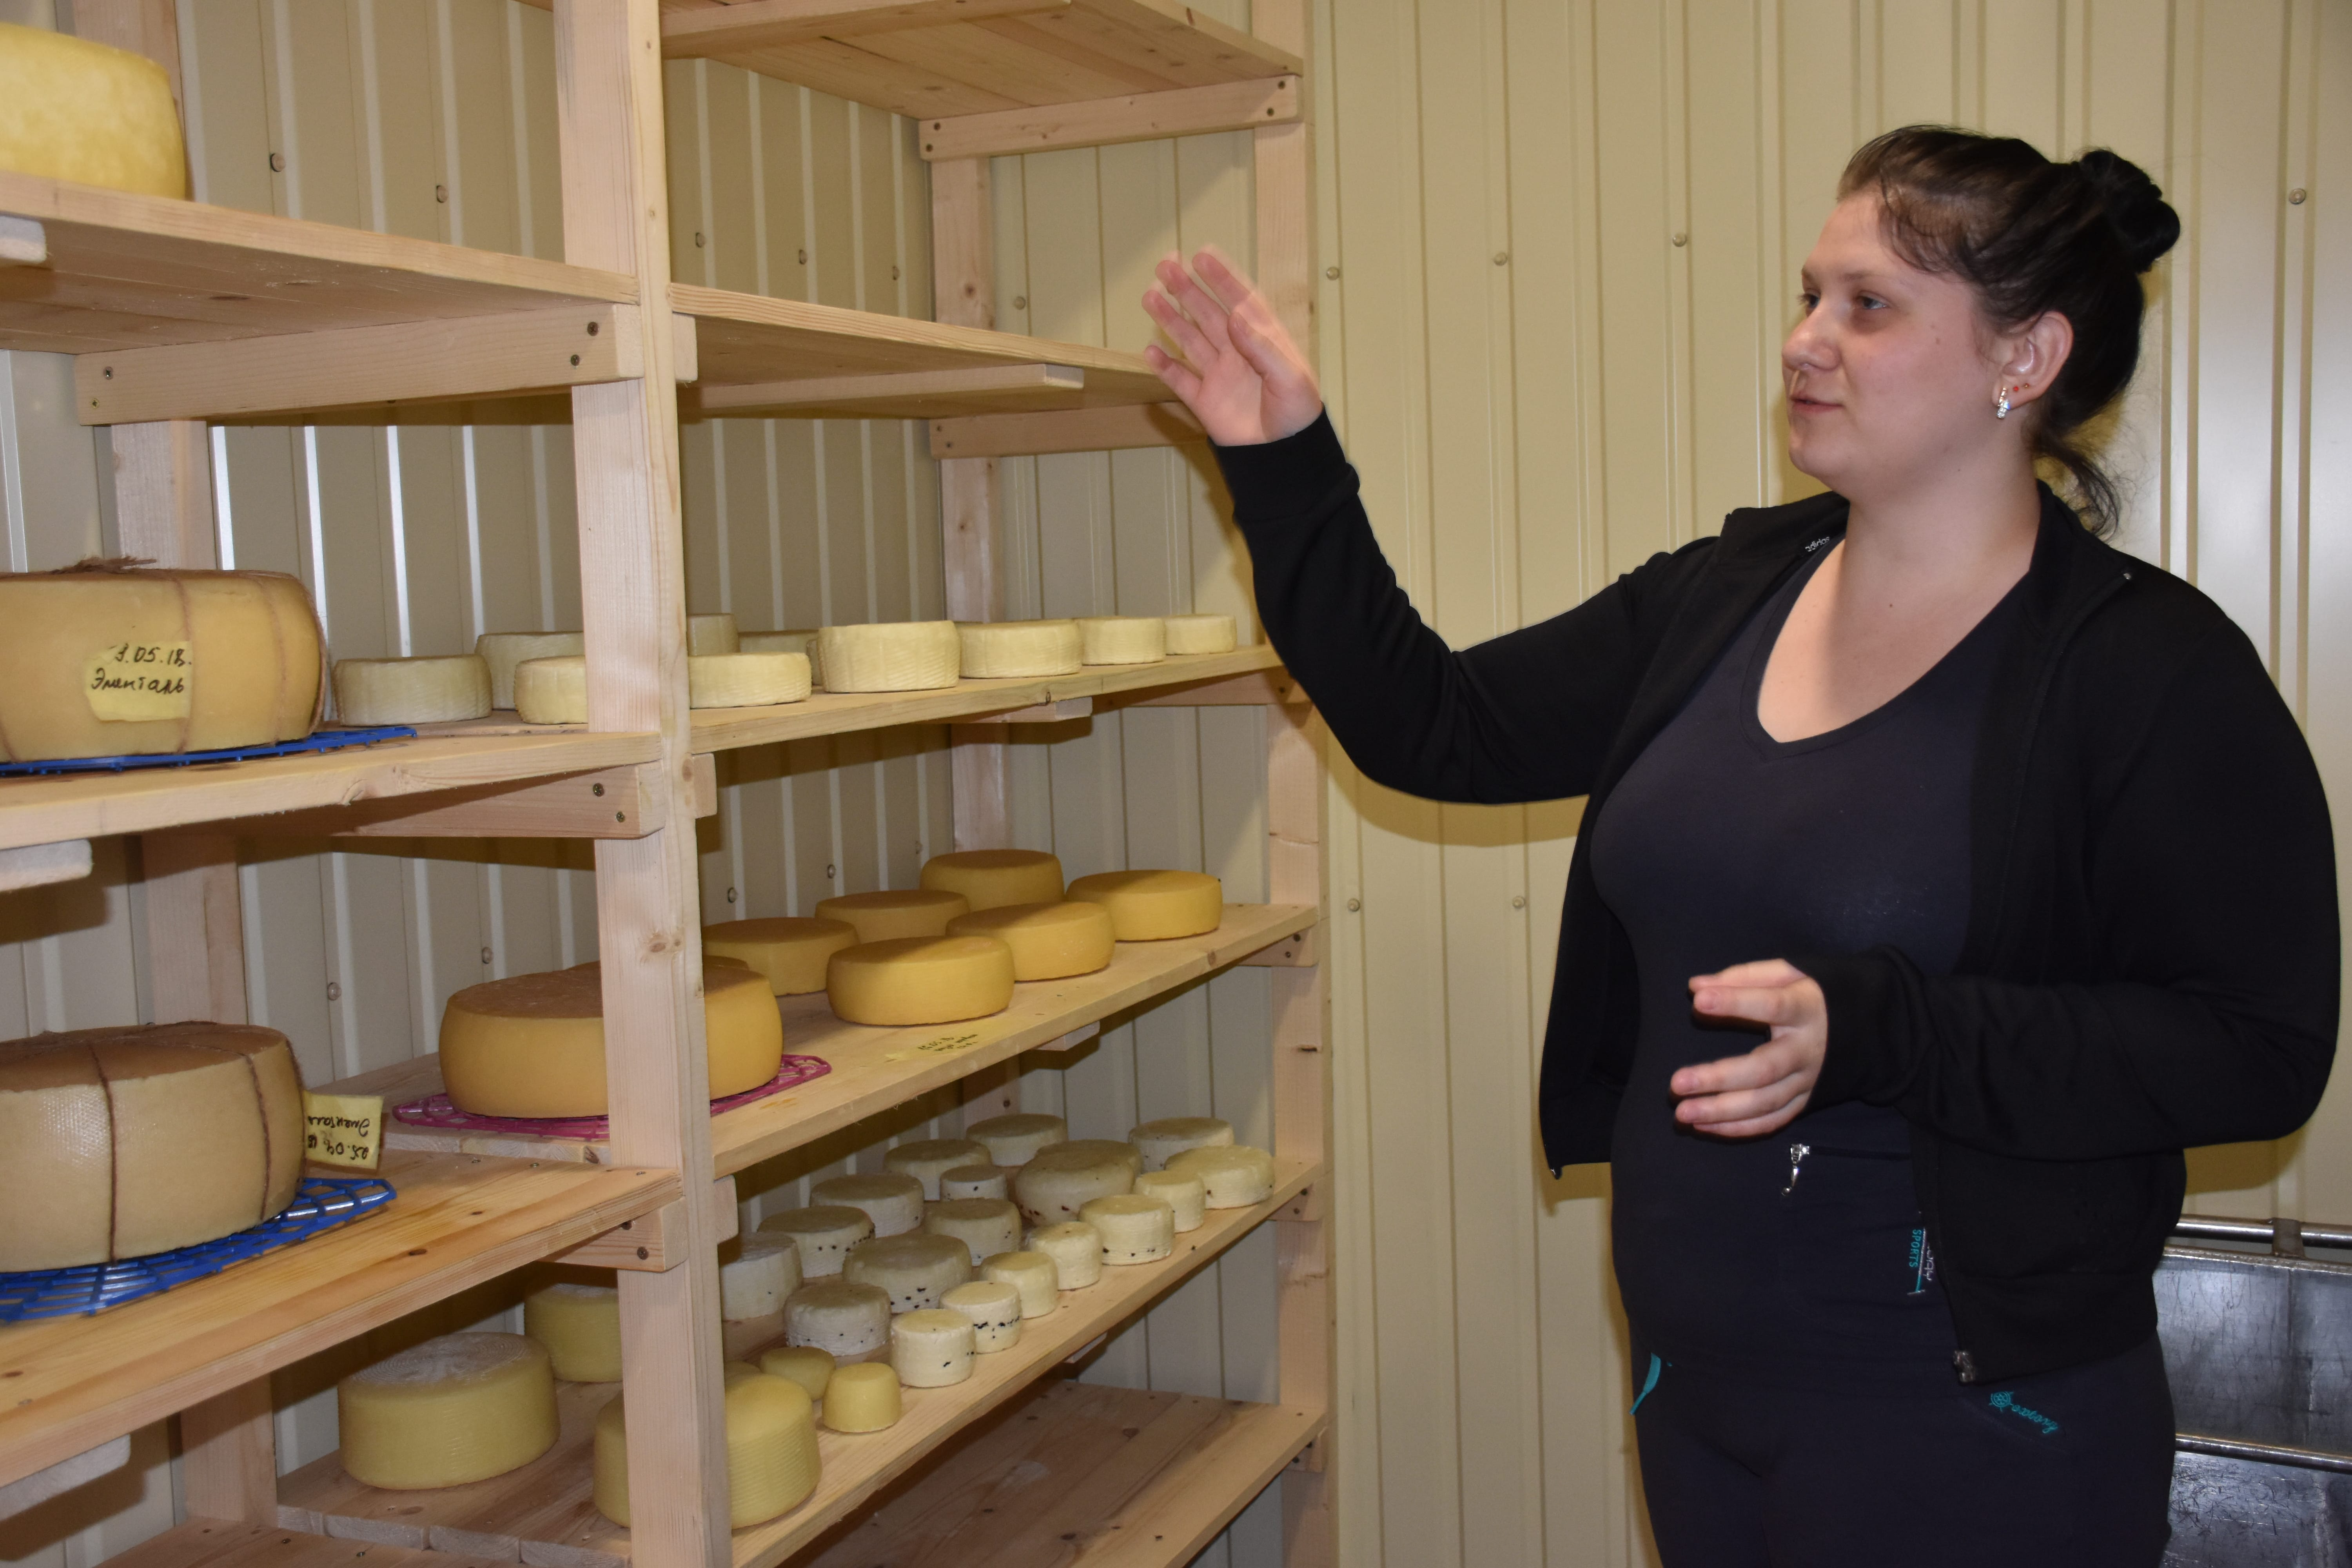 Dairy cooperative, bicycle rickshaw and donors' grants - Illinivska hromada is ready to develop business in countryside